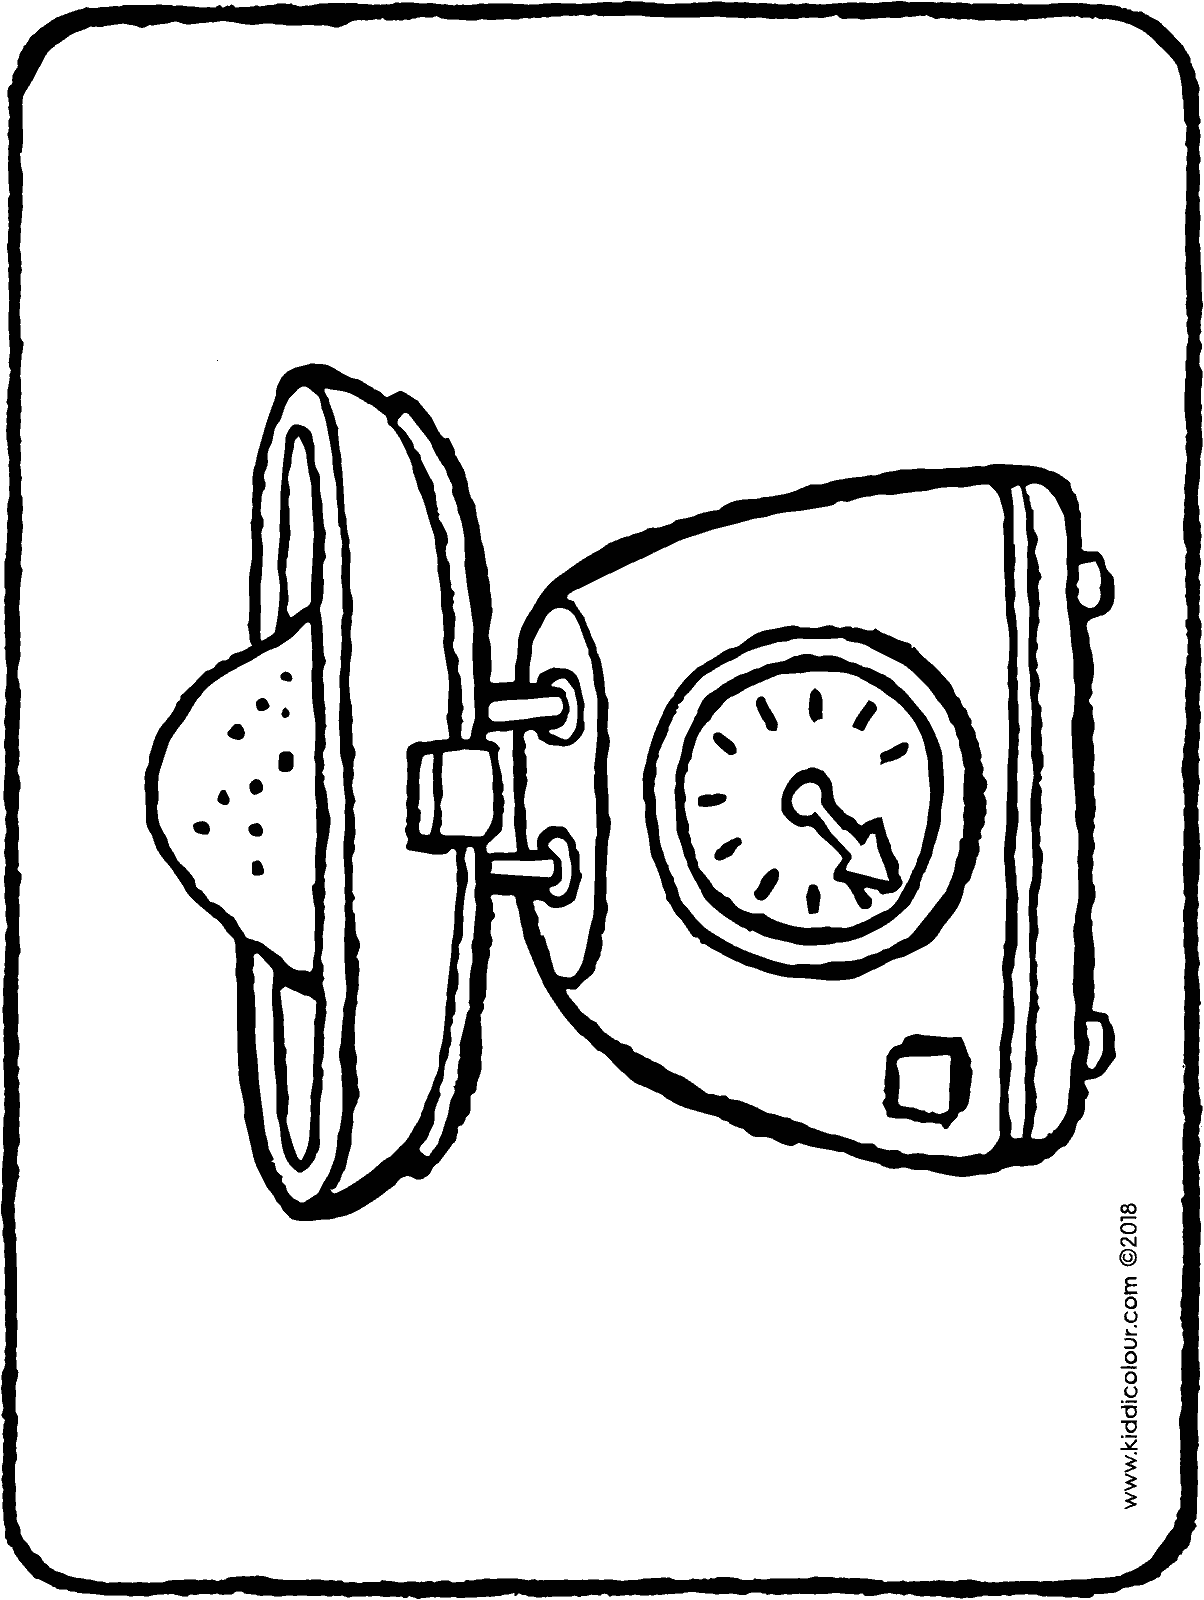 kitchen scales colouring page drawing picture 01H